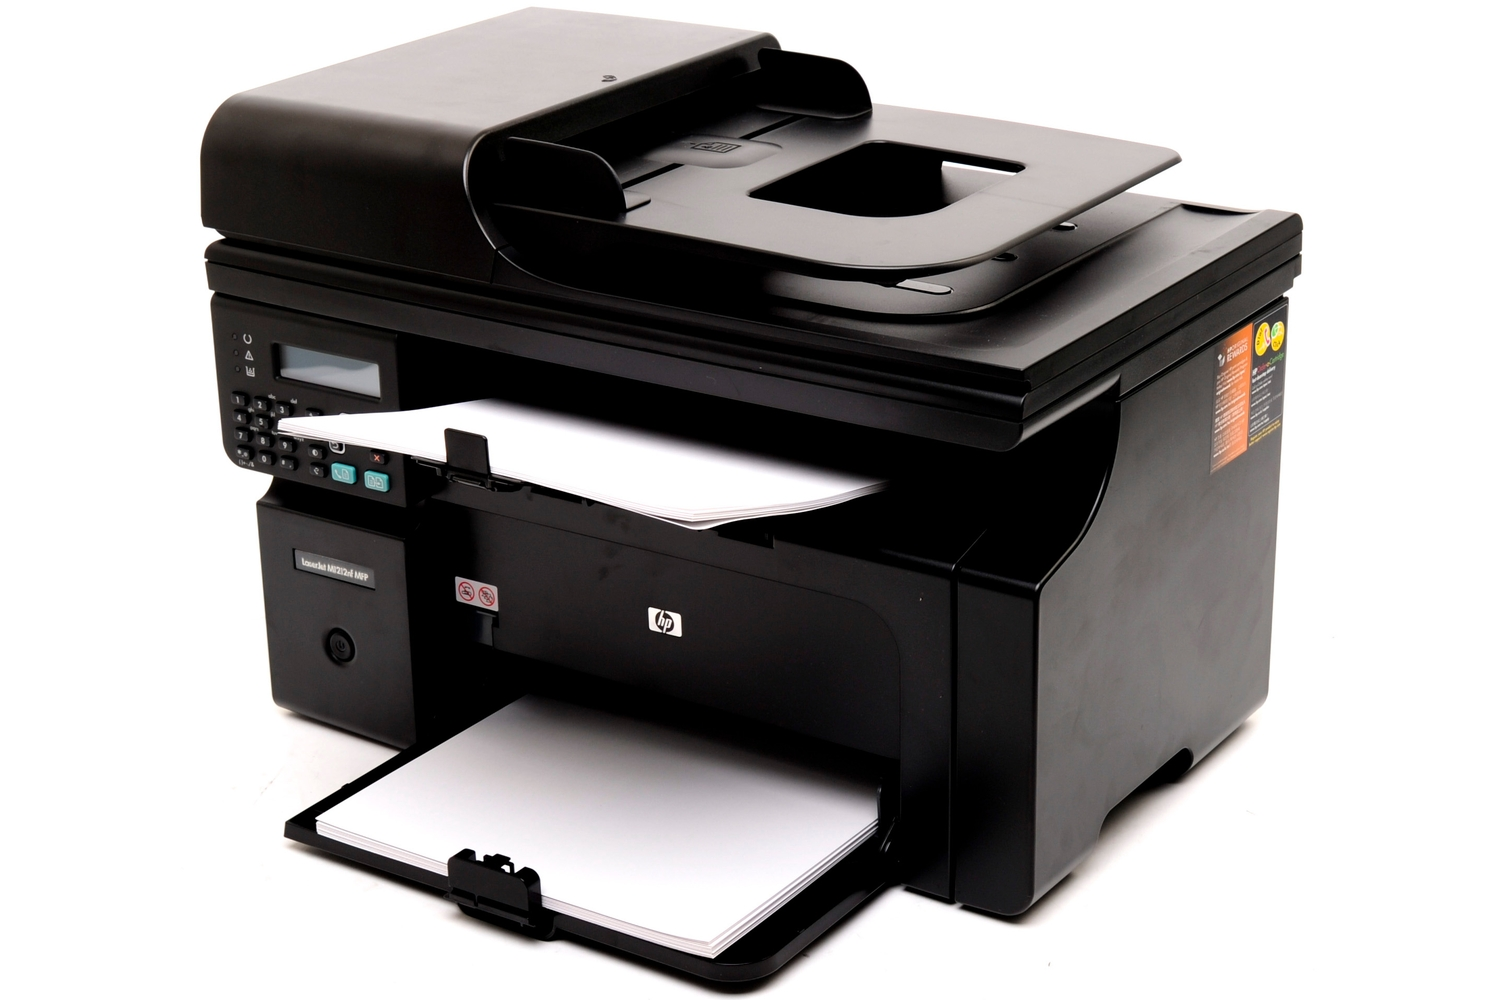 Hp Laserjet Pro M1212nf Review This Low Cost Hp Laser